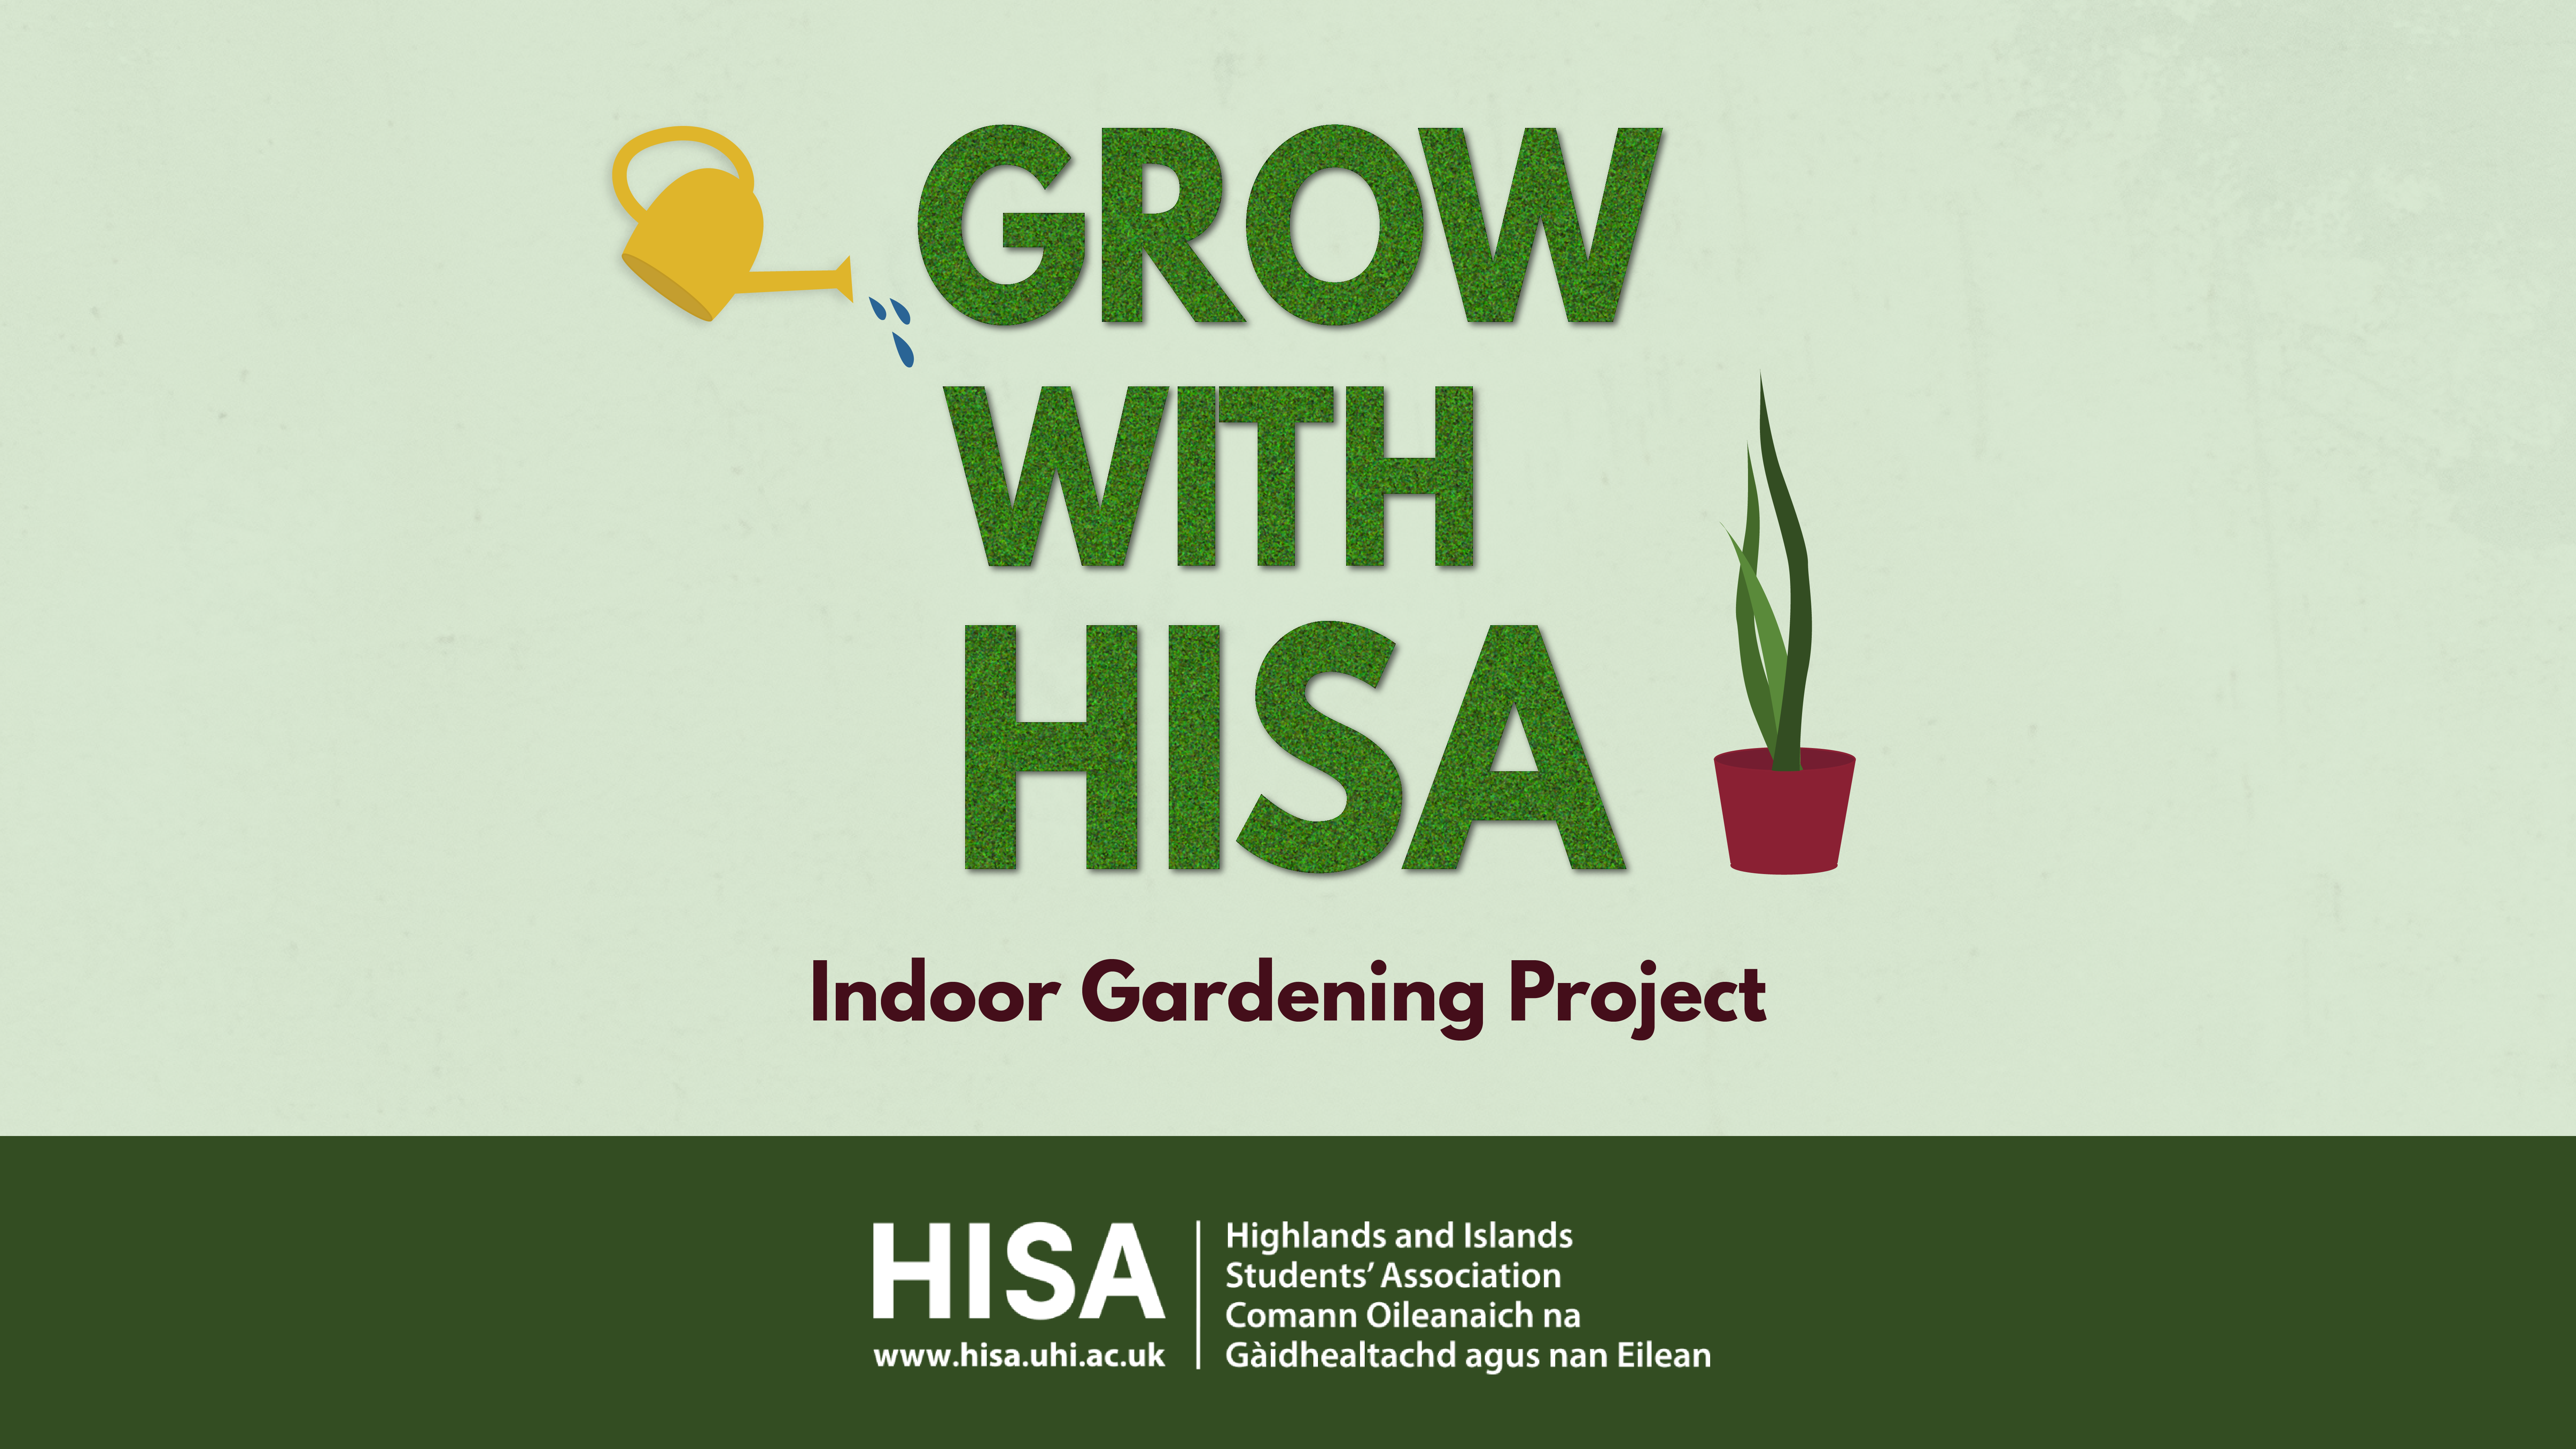 Grow with hisa twitter 01